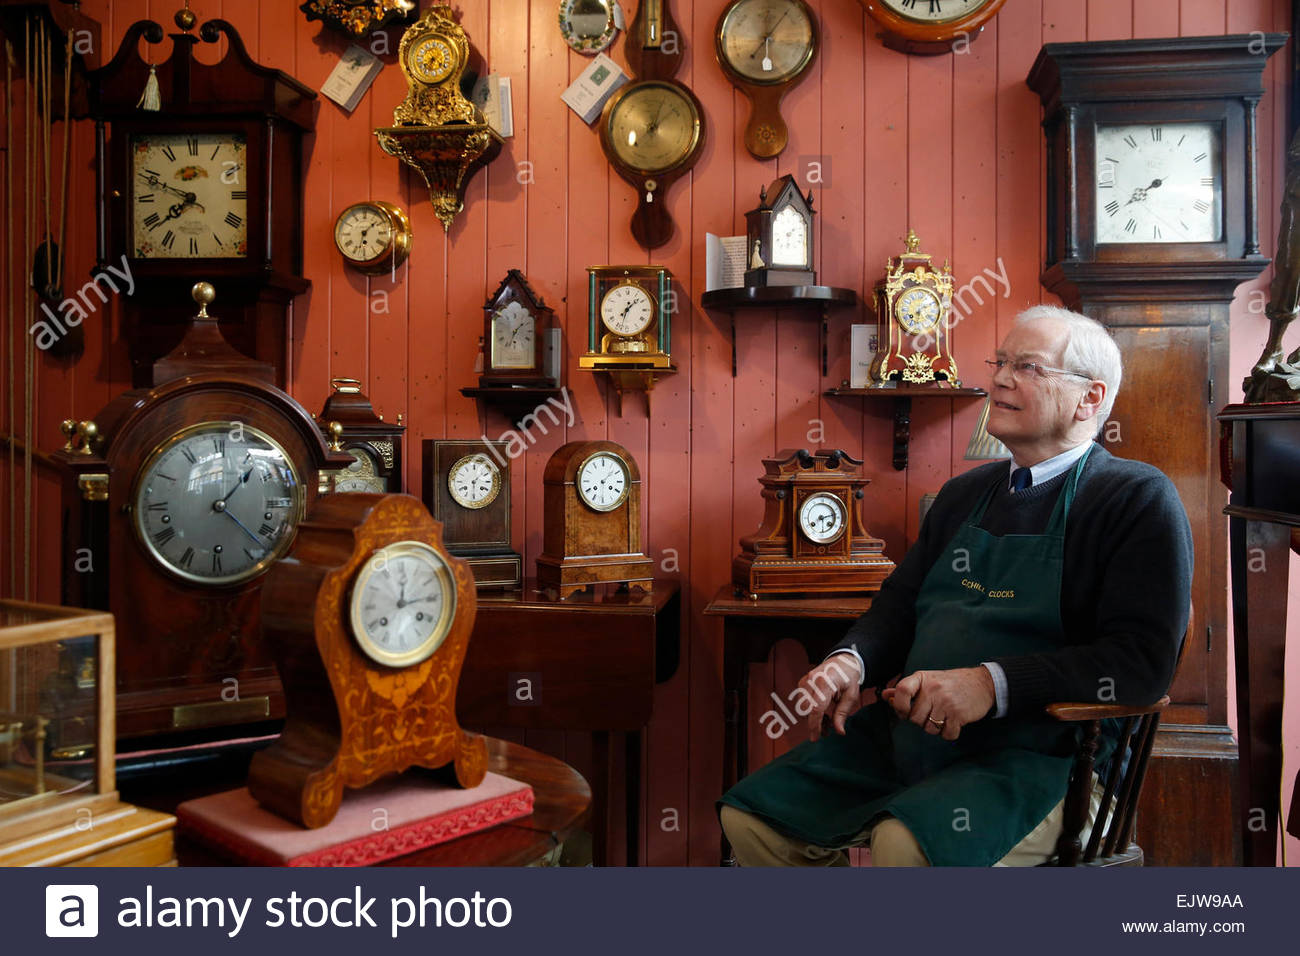 Time clock tempus fugit stock photos time clock tempus fugit antique clock restorer william tyrrell sits among his clocks at churchill clocks in midhurst amipublicfo Image collections